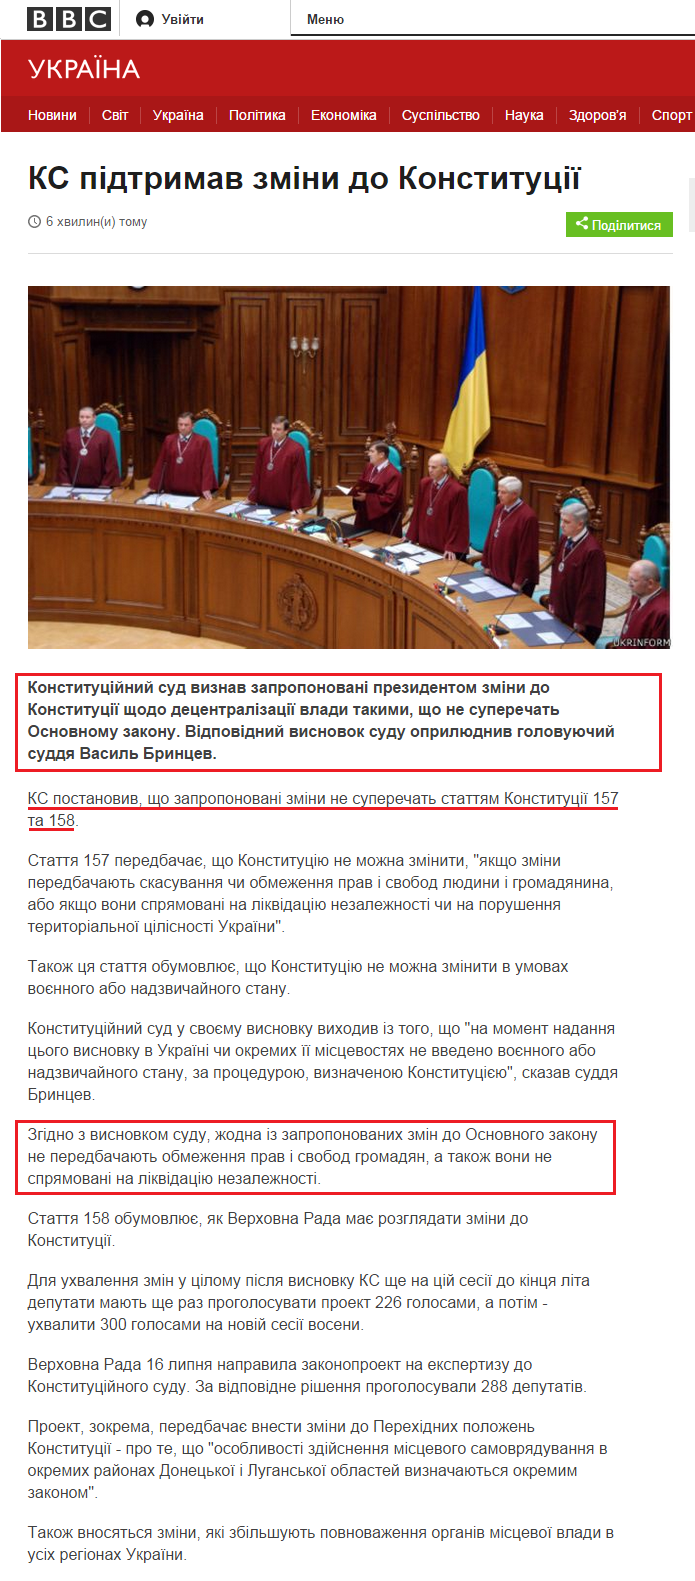 http://www.bbc.com/ukrainian/news_in_brief/2015/07/150731_she_constitution_changes_court.shtml?ocid=socialflow_facebook